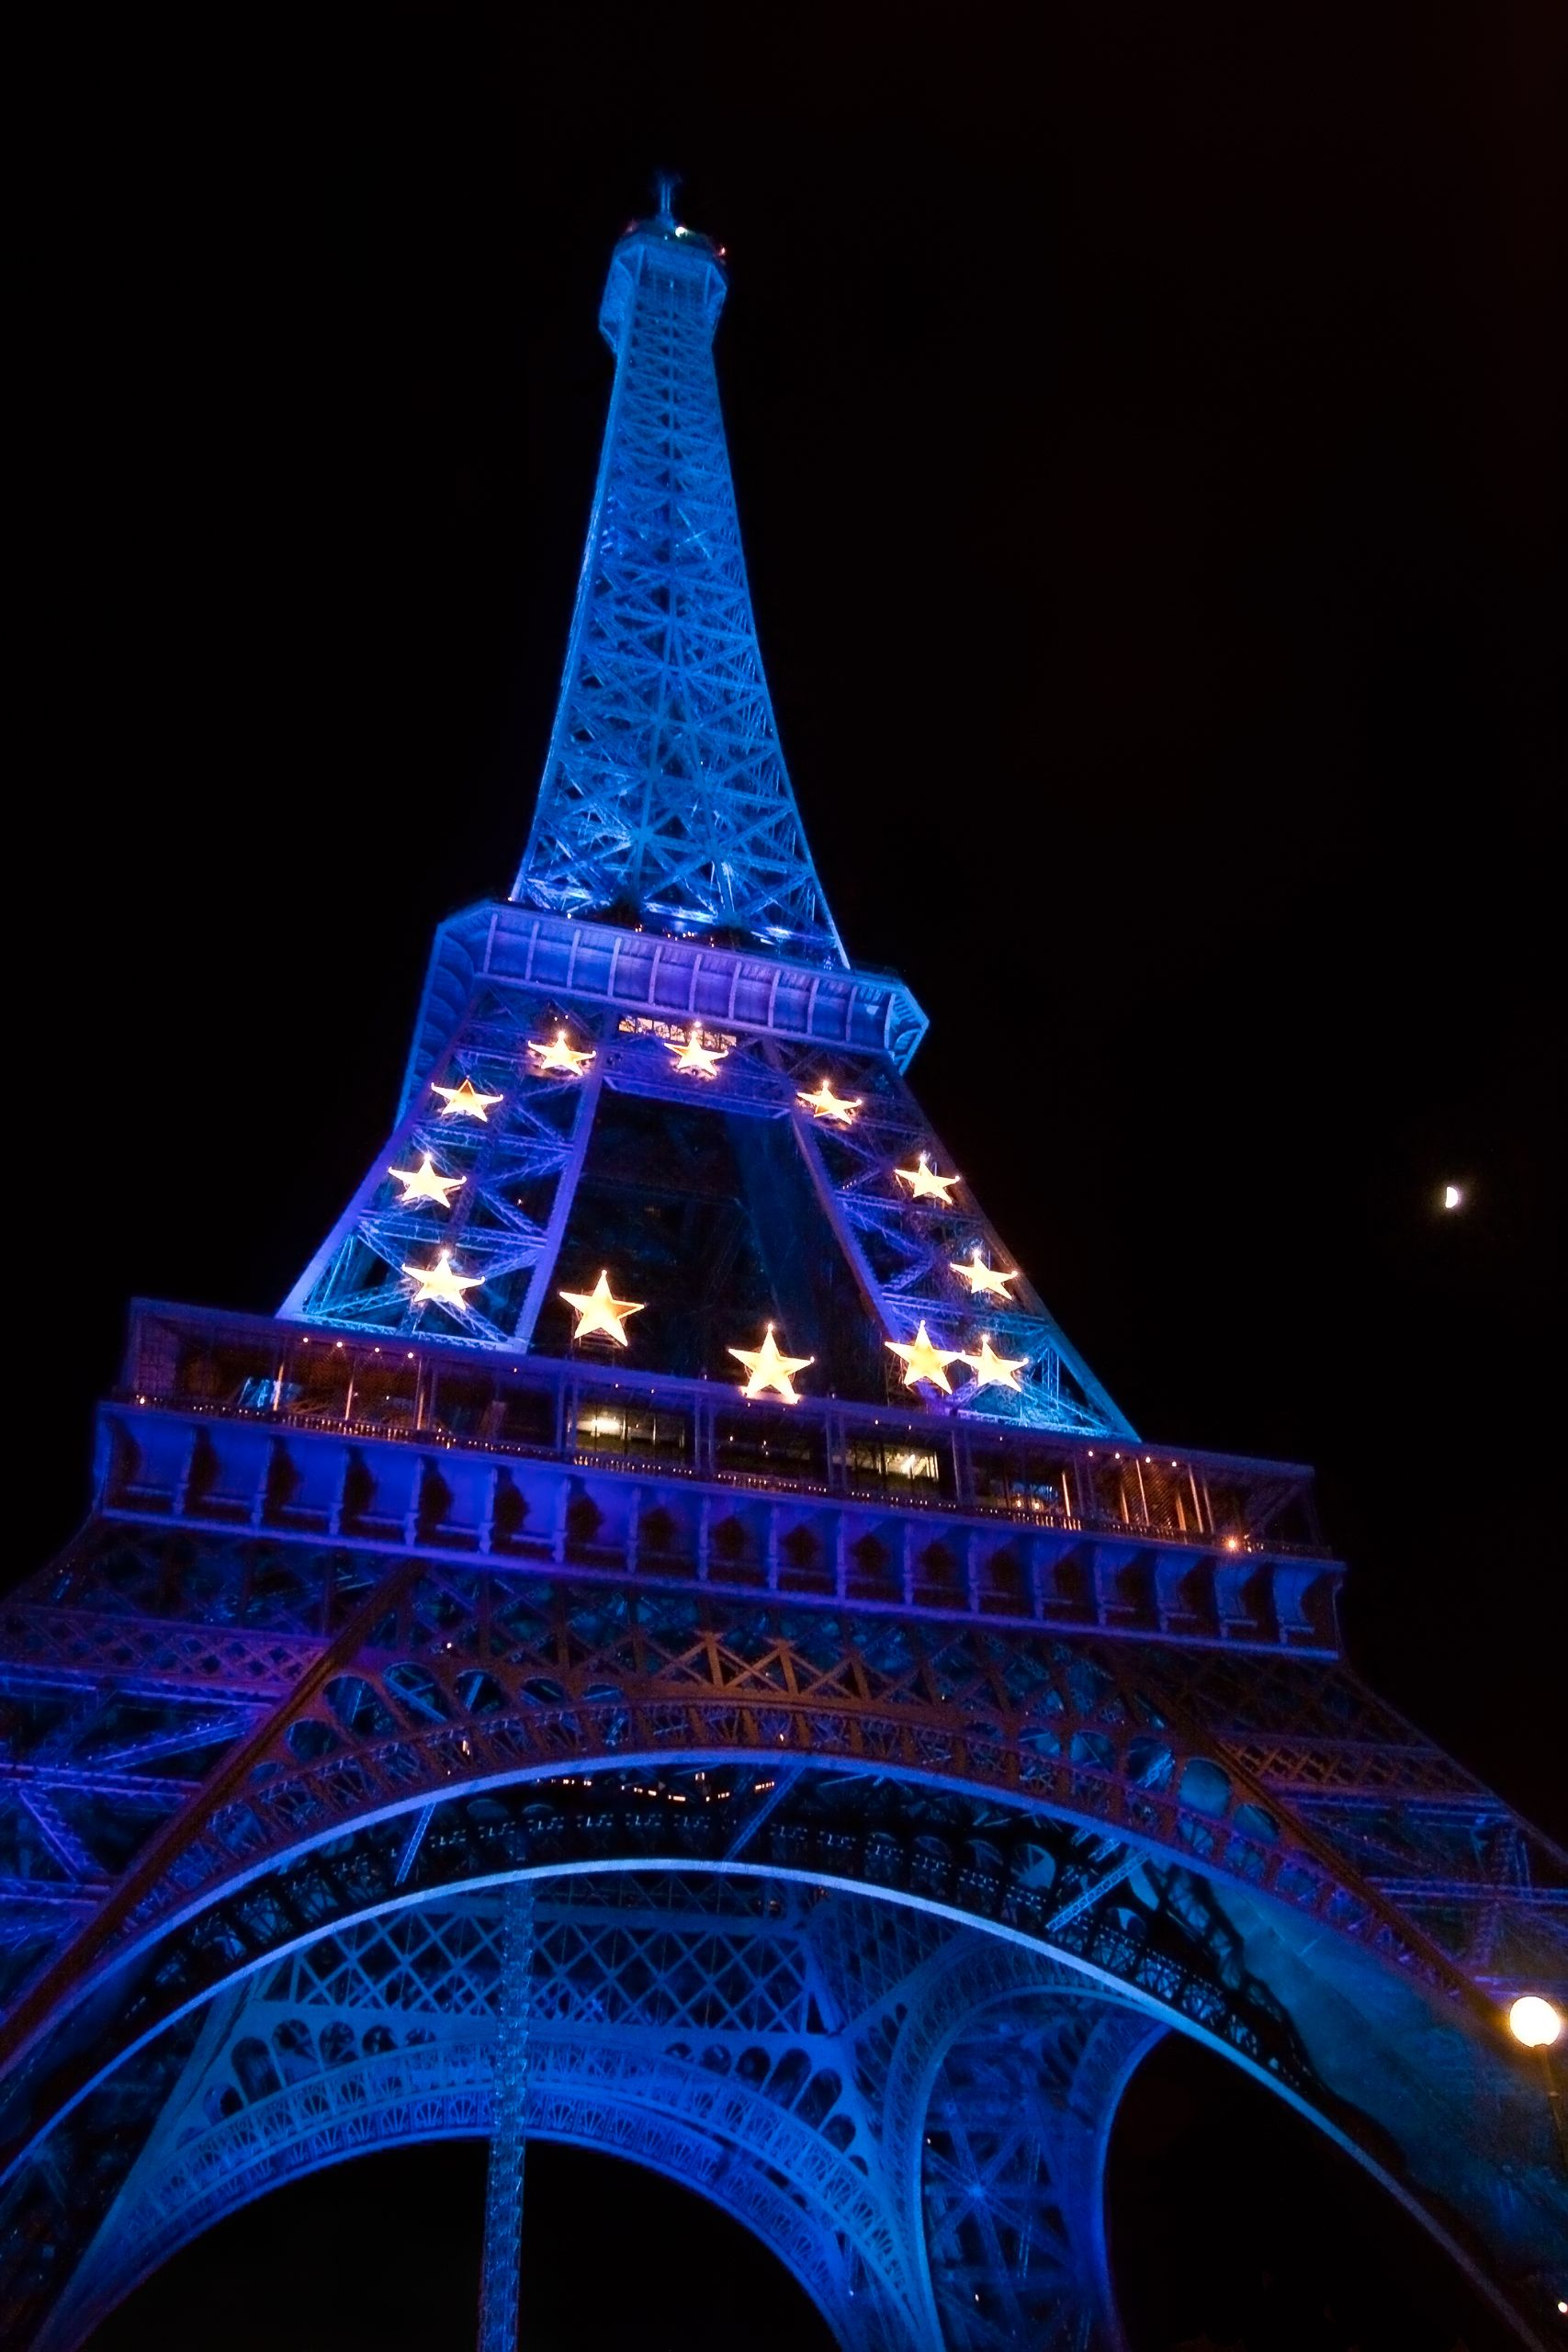 The Eiffel Tower At Night With Moon